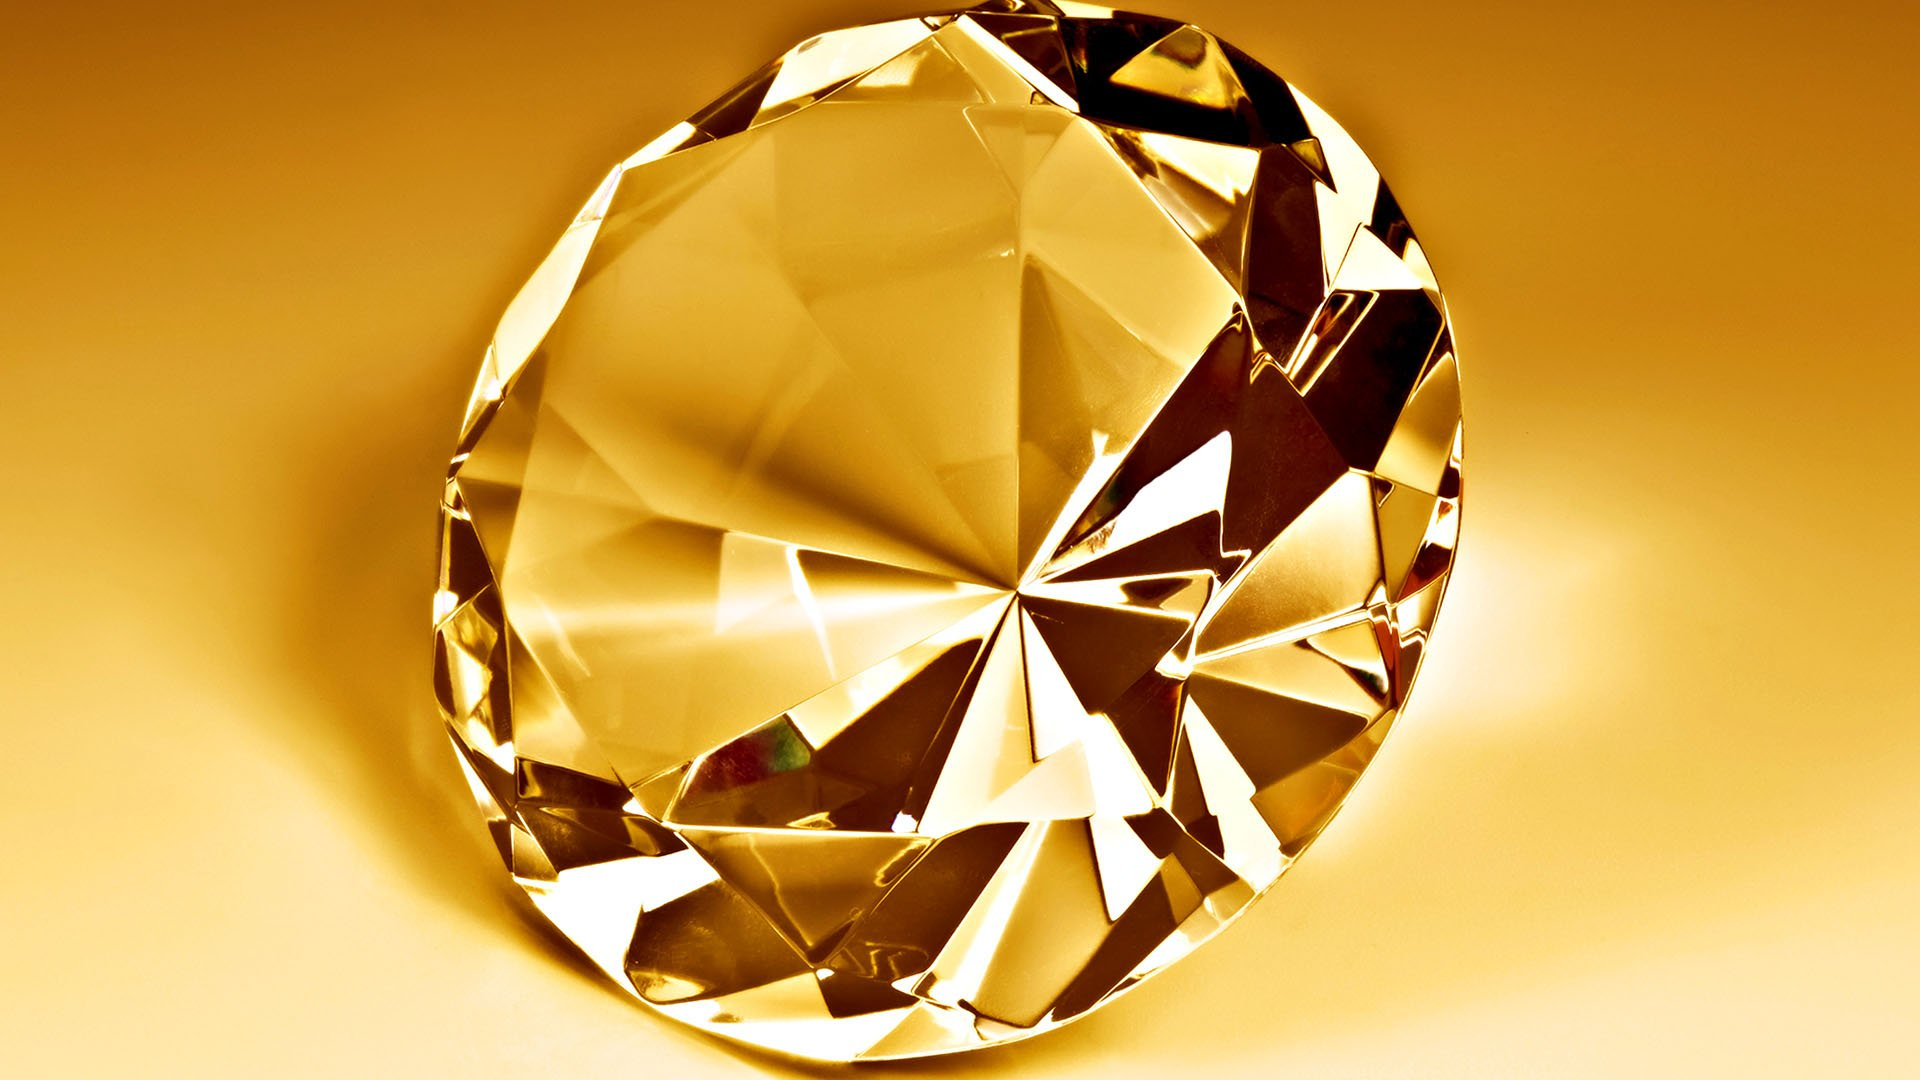 Gold diamond wallpaper wallpapersafari for Gold 3d wallpaper